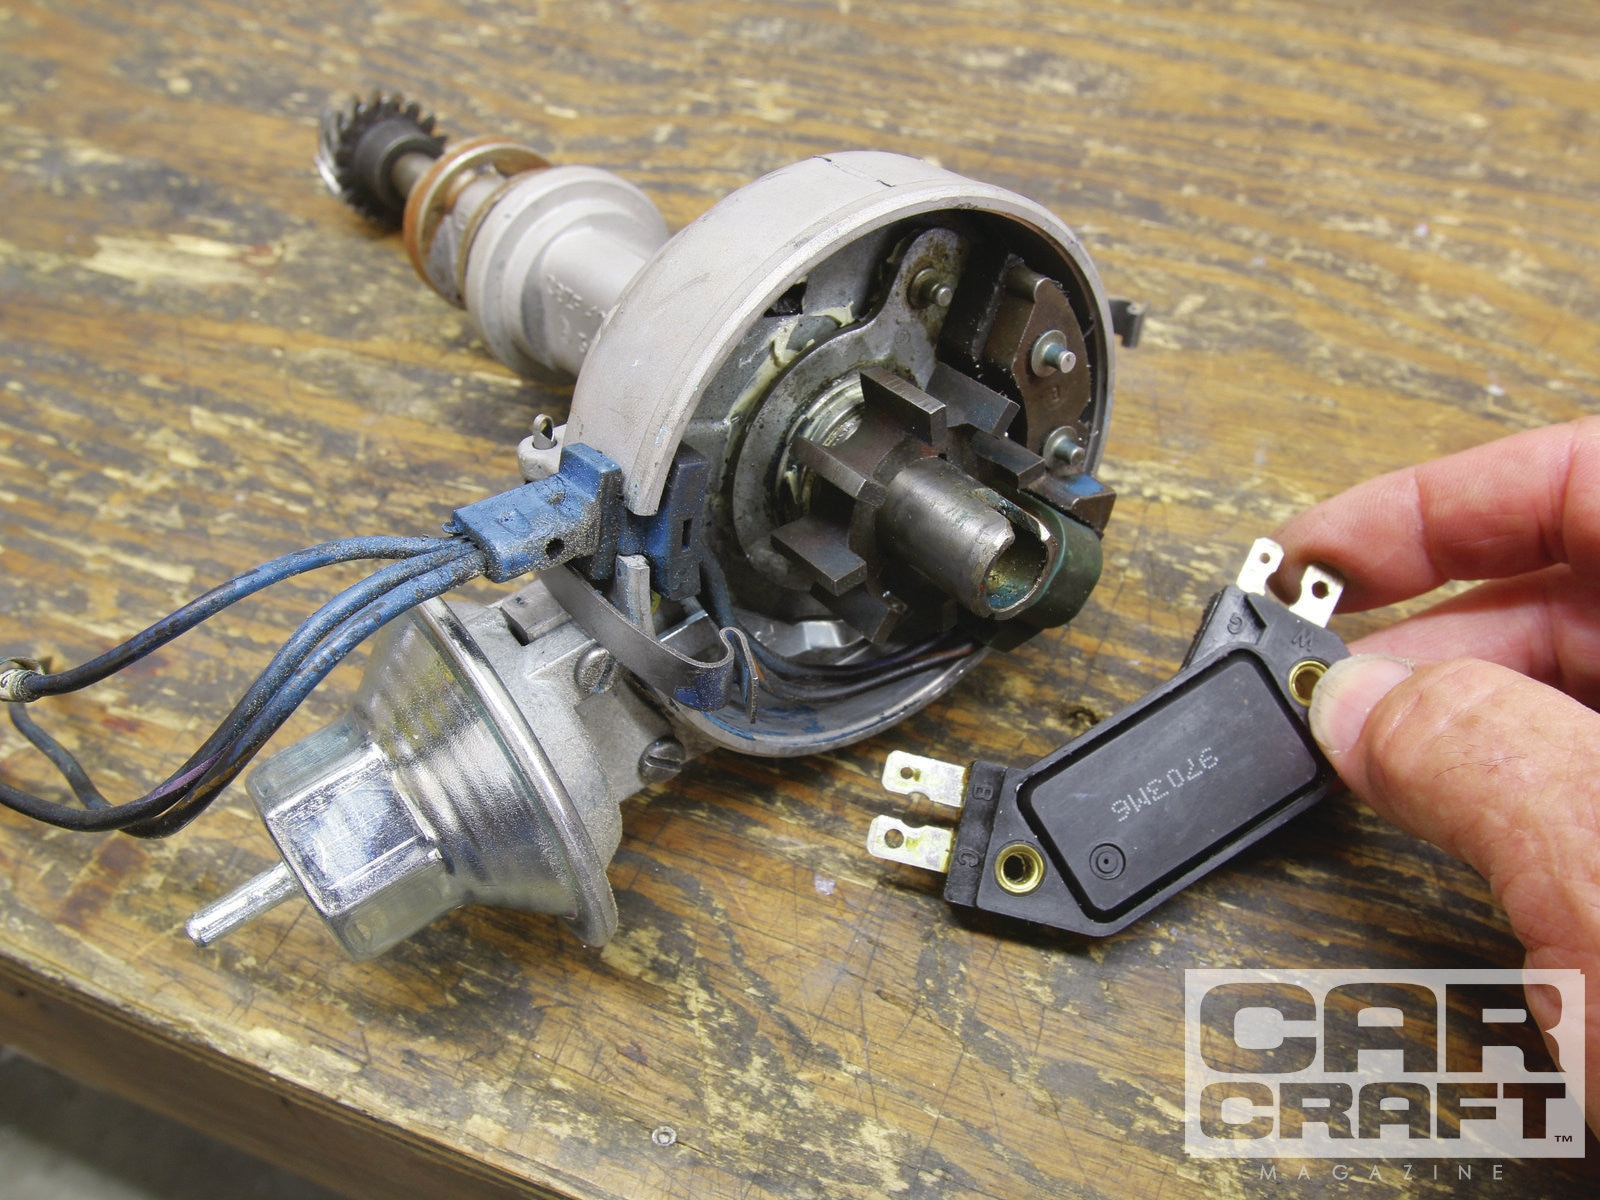 medium resolution of how to convert a ford or chrysler ignition to gm hei car craft hei conversion wiring diagram ford 351w hei distributor cap wiring diagram